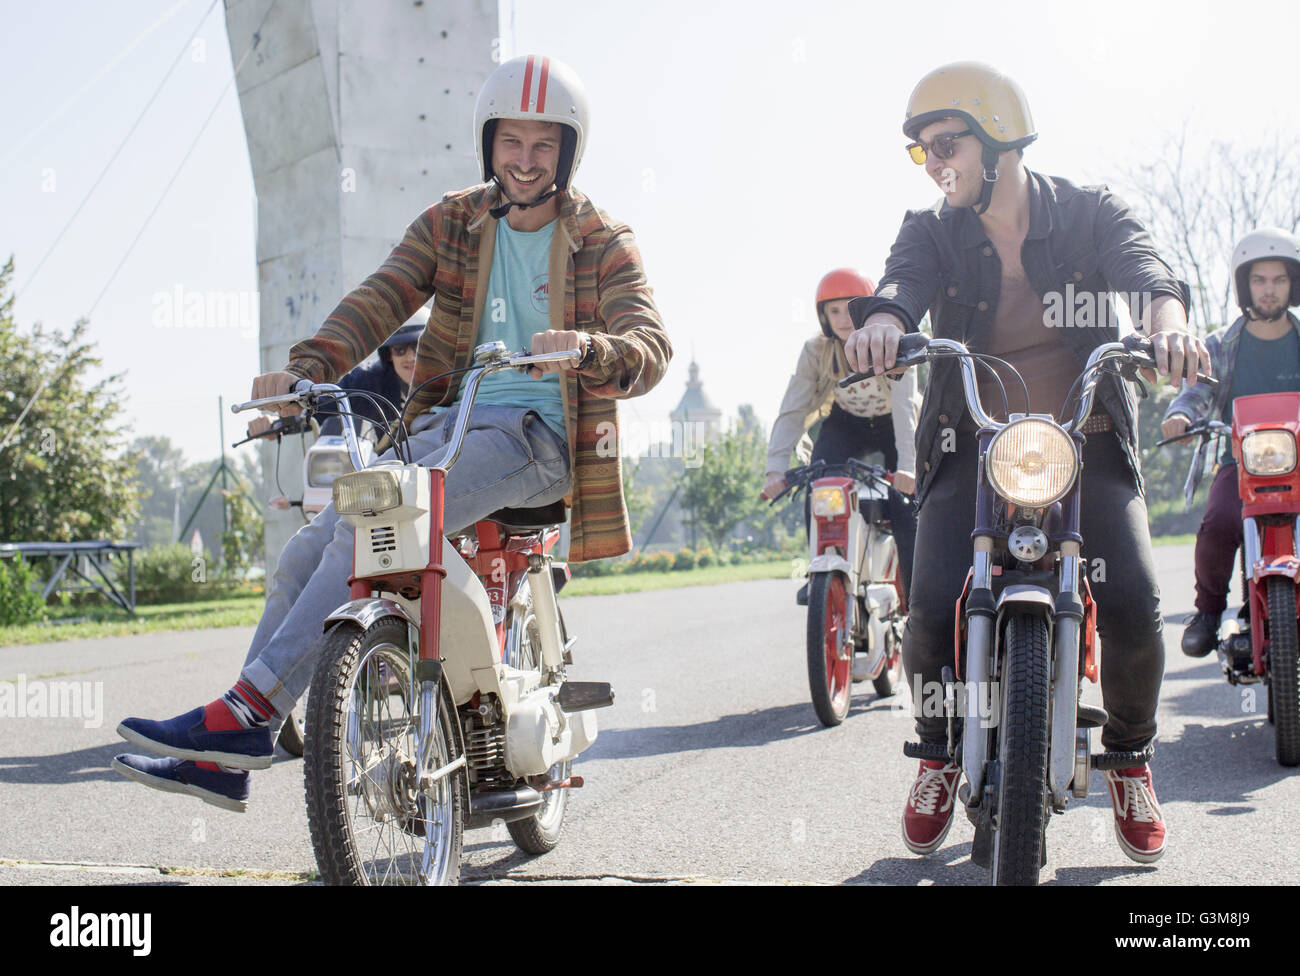 Group of friends riding mopeds along road - Stock Image